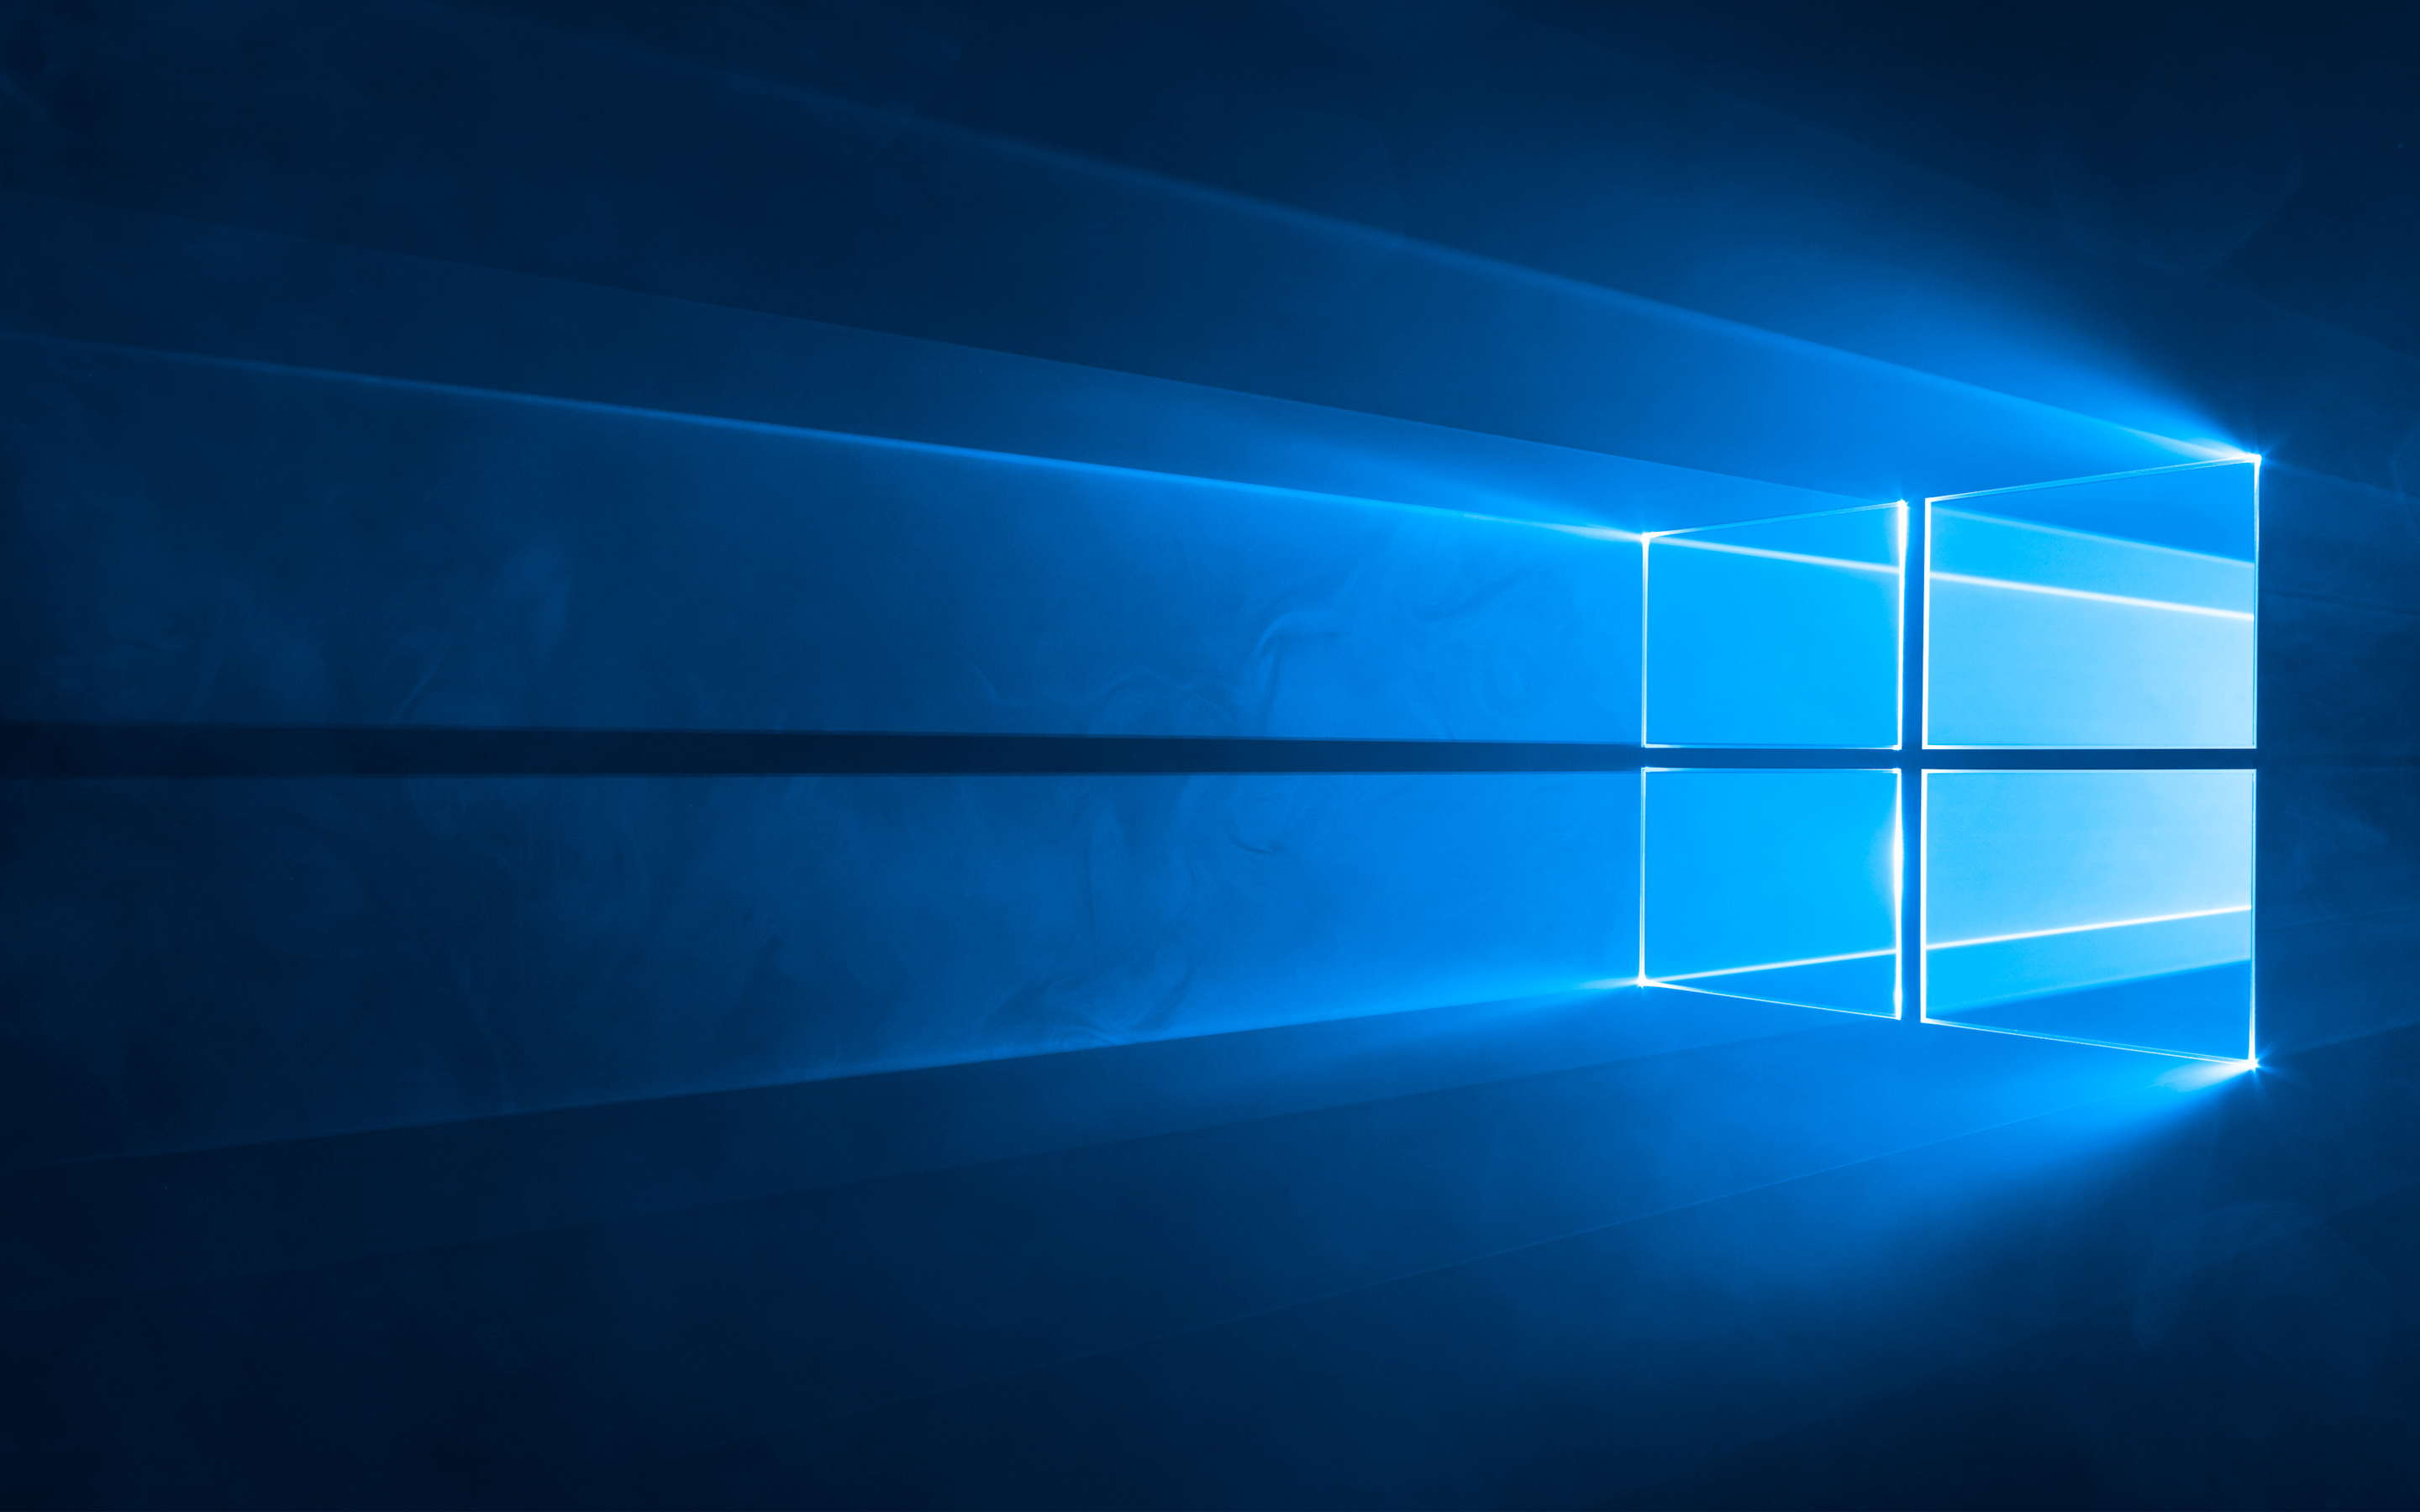 Windows 10 Wallpapers HD Wallpapers 2880x1800